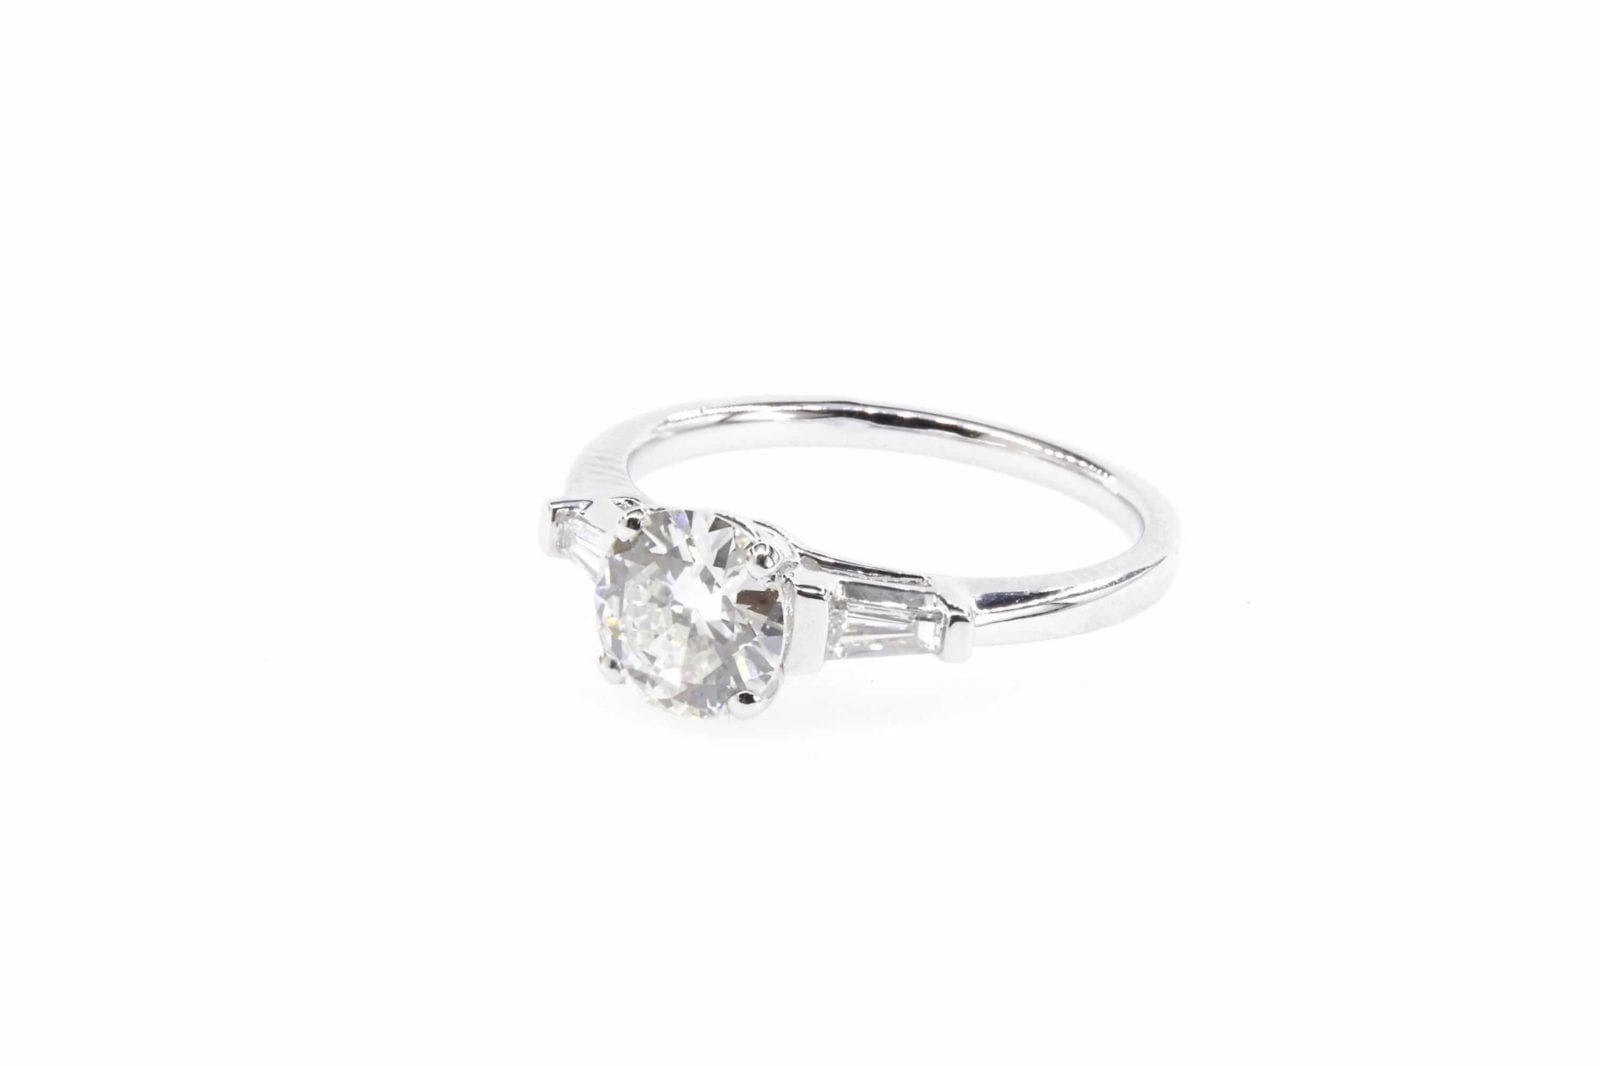 Bague solitaire diamant en or blanc 18k